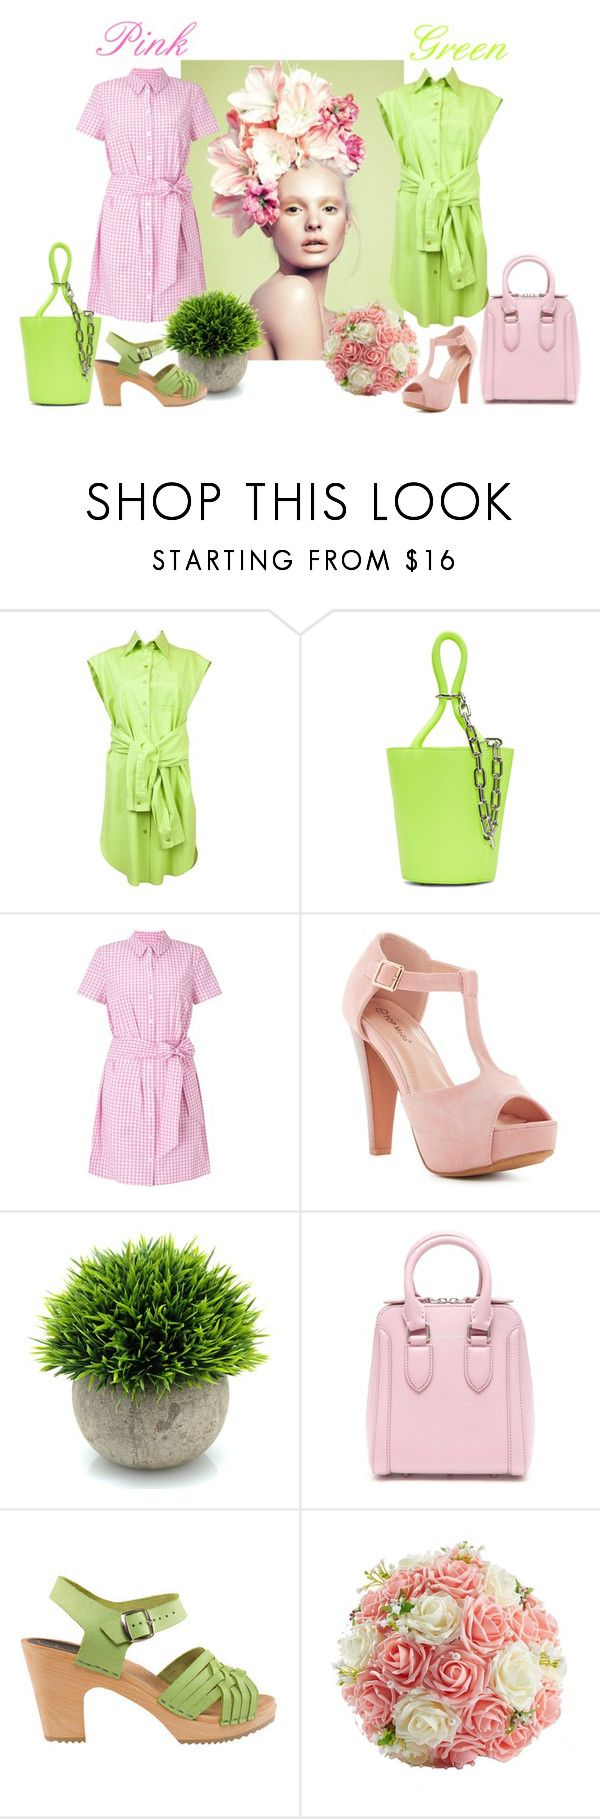 """Pink or green?"" by ciukinaa ❤ liked on Polyvore featuring Moschino, Alexander Wang, Miss Selfridge, Top Moda, Alexander McQueen and Cape Clogs"